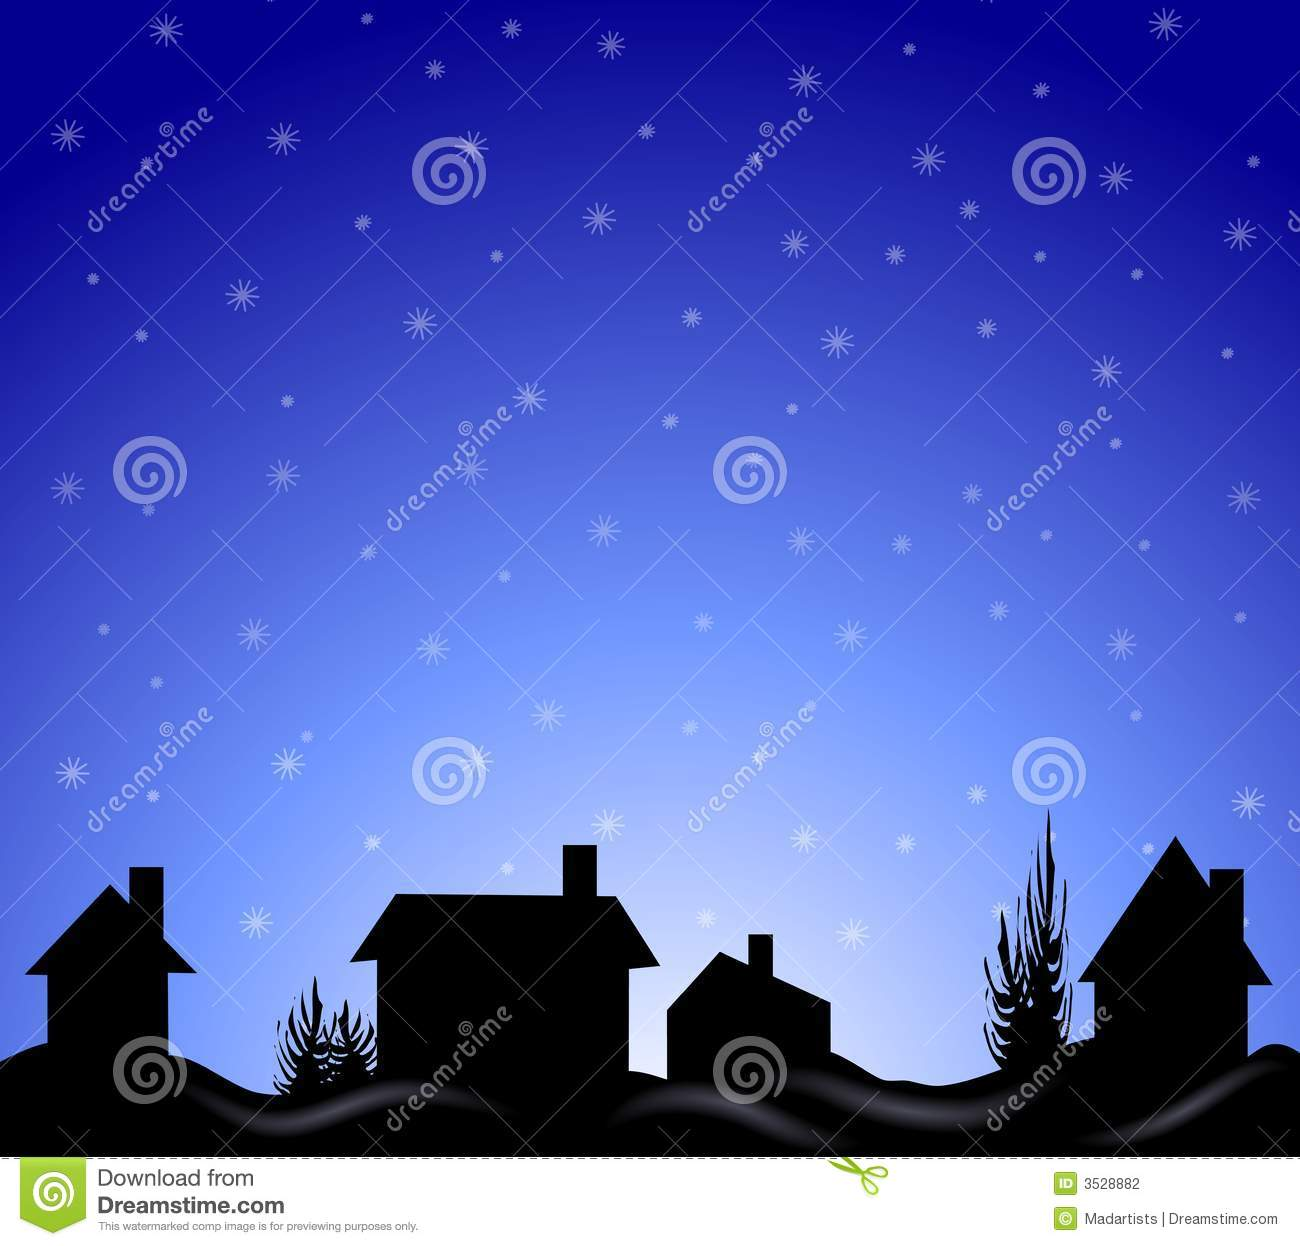 clip art illustration of a winter night scene with houses and trees ...